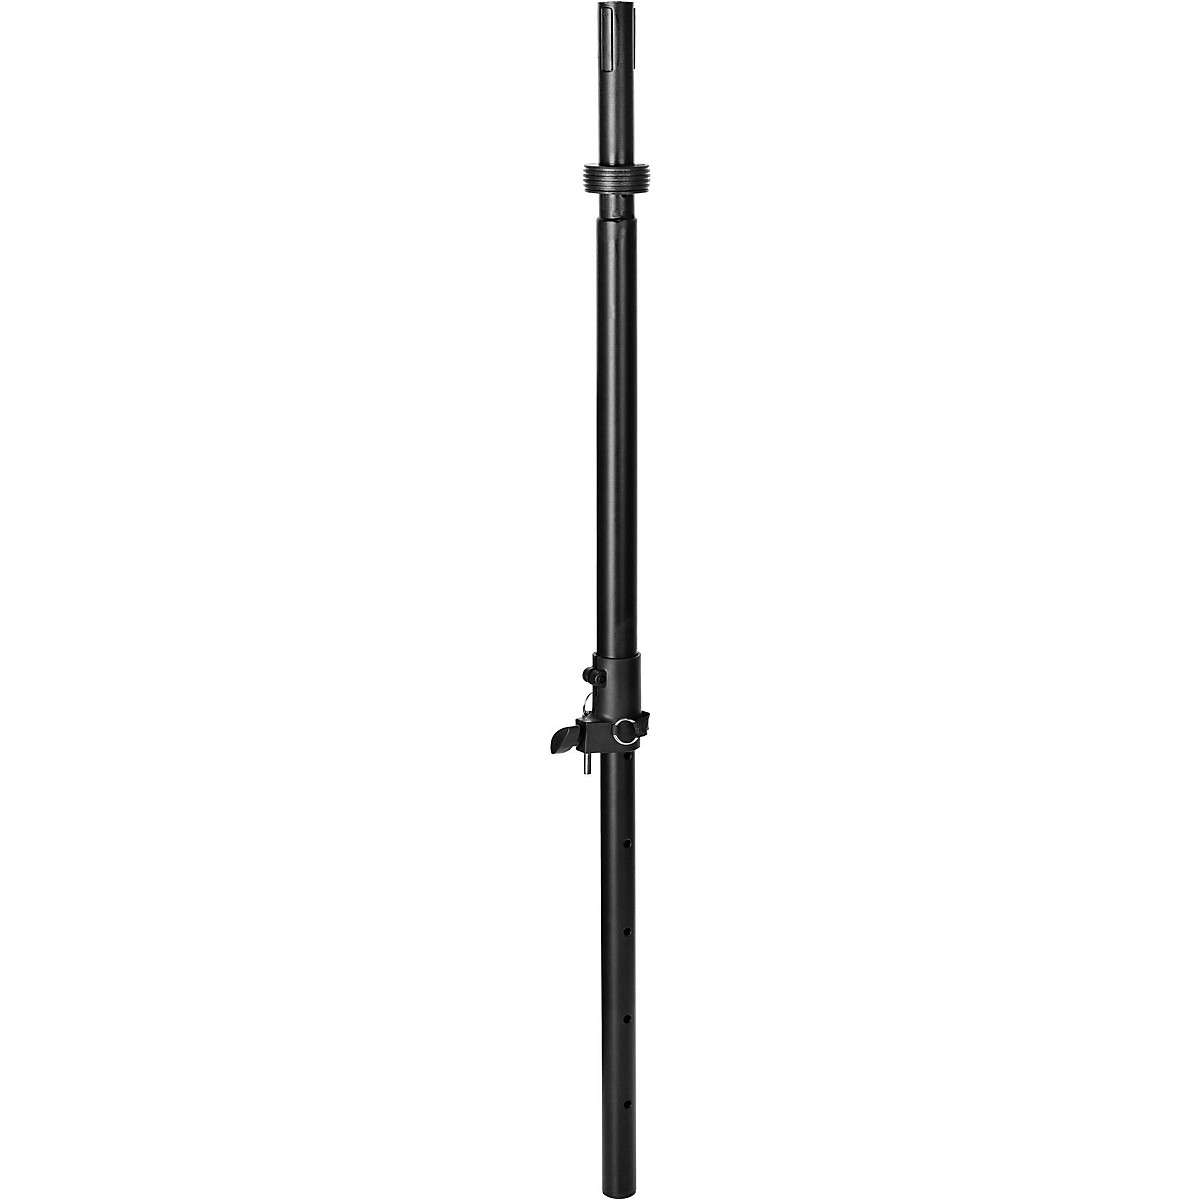 On-Stage Speaker Sub Pole With Locking Adapter